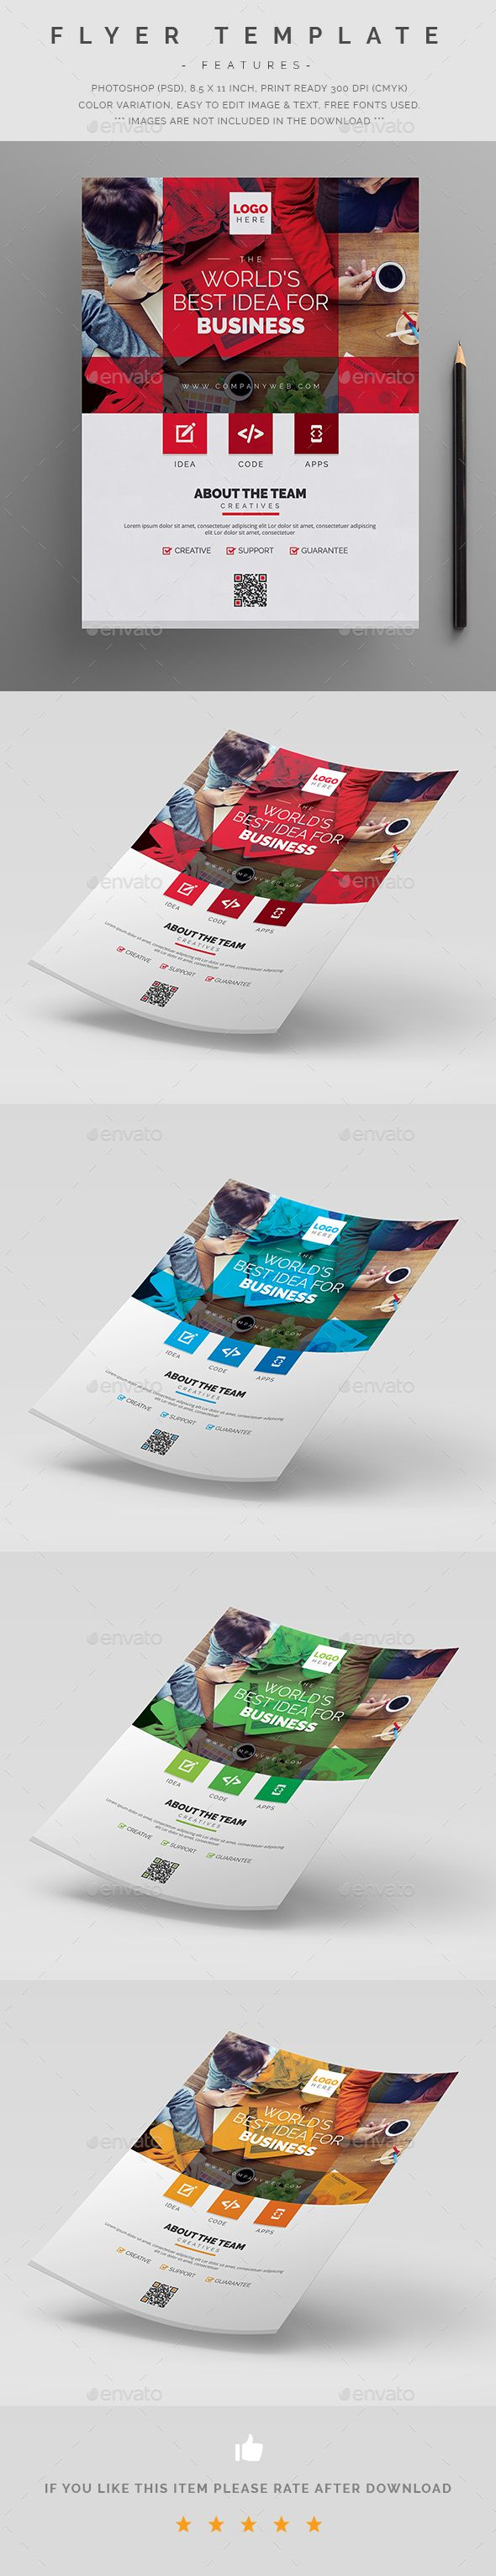 Flyer Template PSD